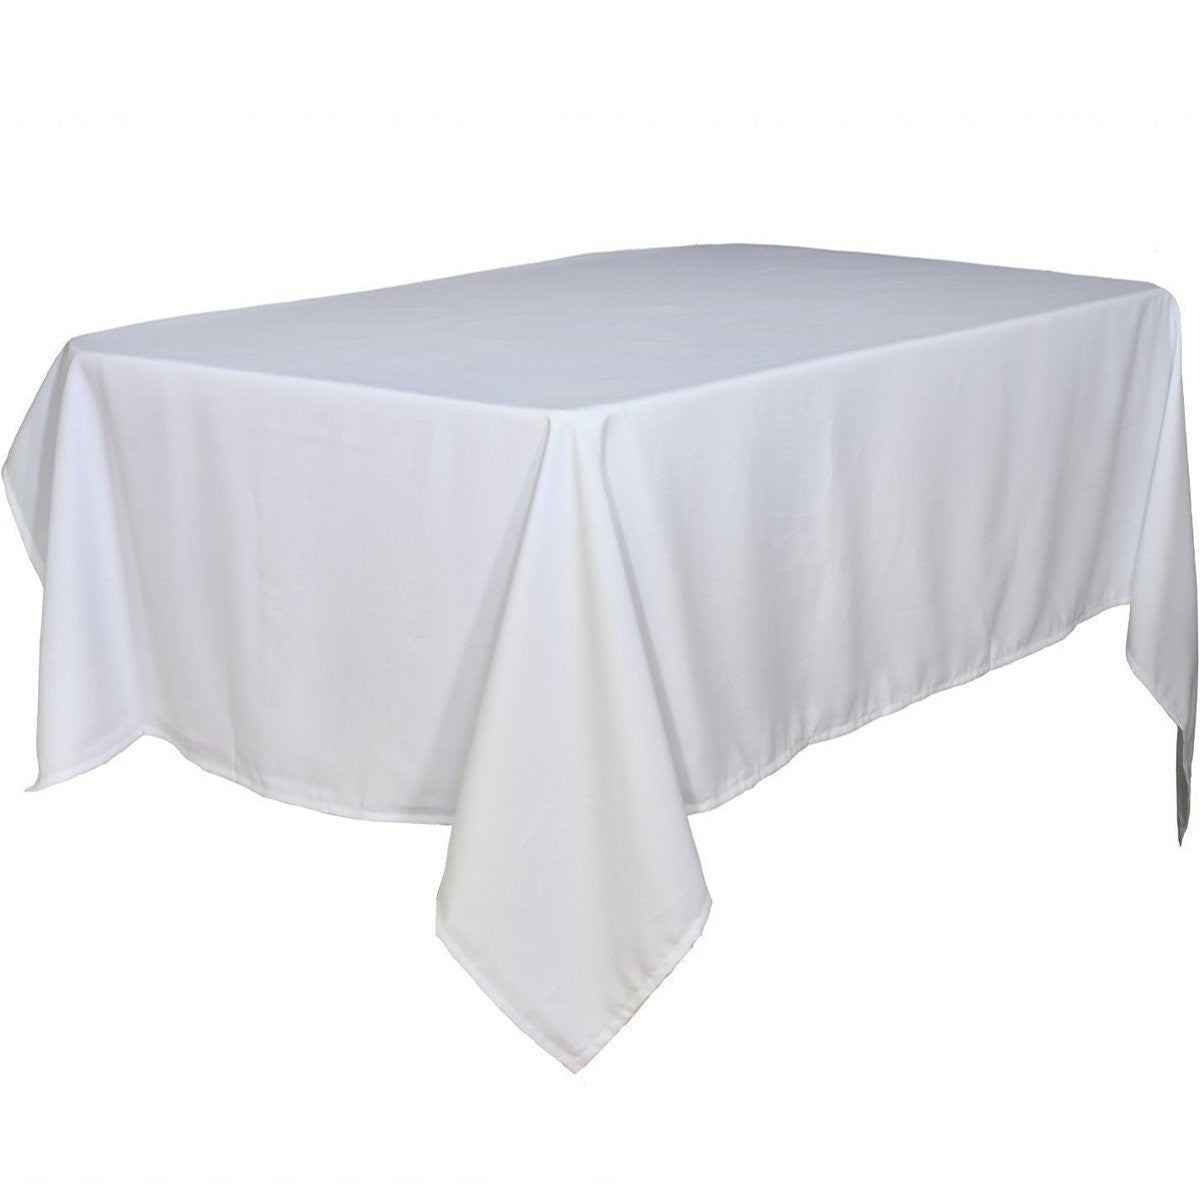 White Rectangular Tablecloth 60 x 102-Inch